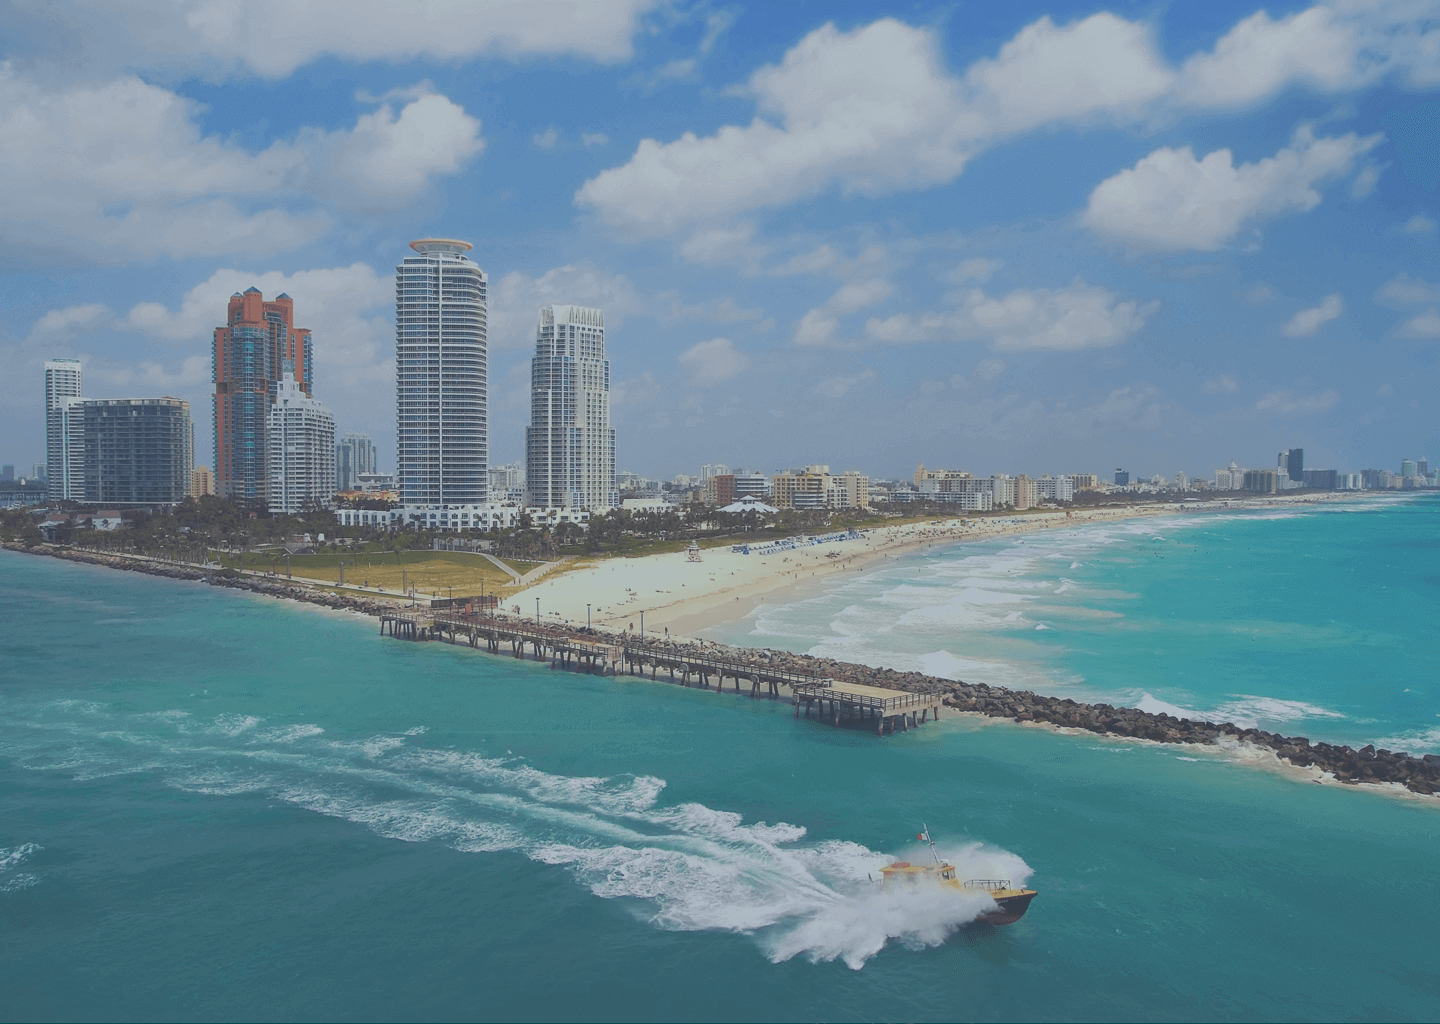 A panoramic view of a Miami beach